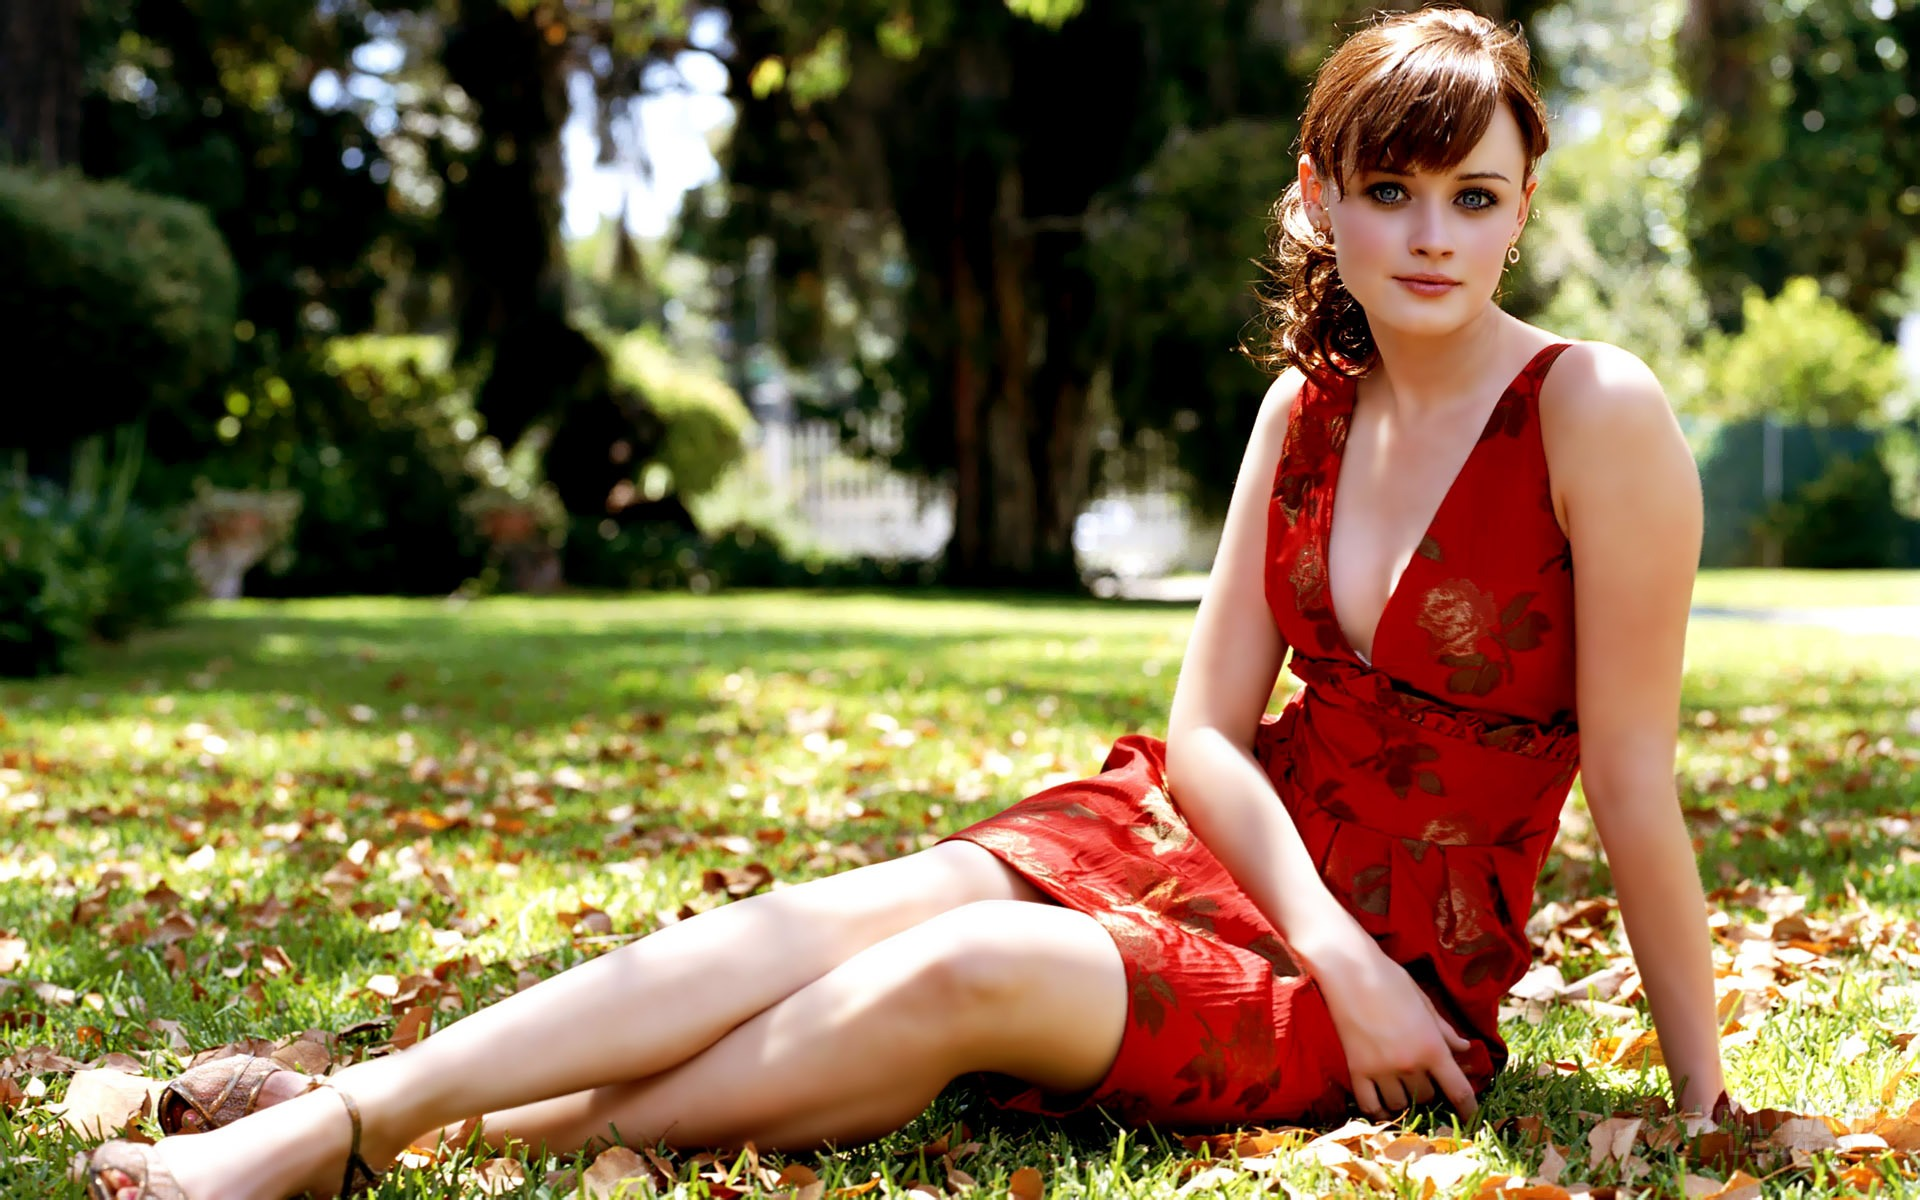 alexis bledel wallpapers high resolution and quality download